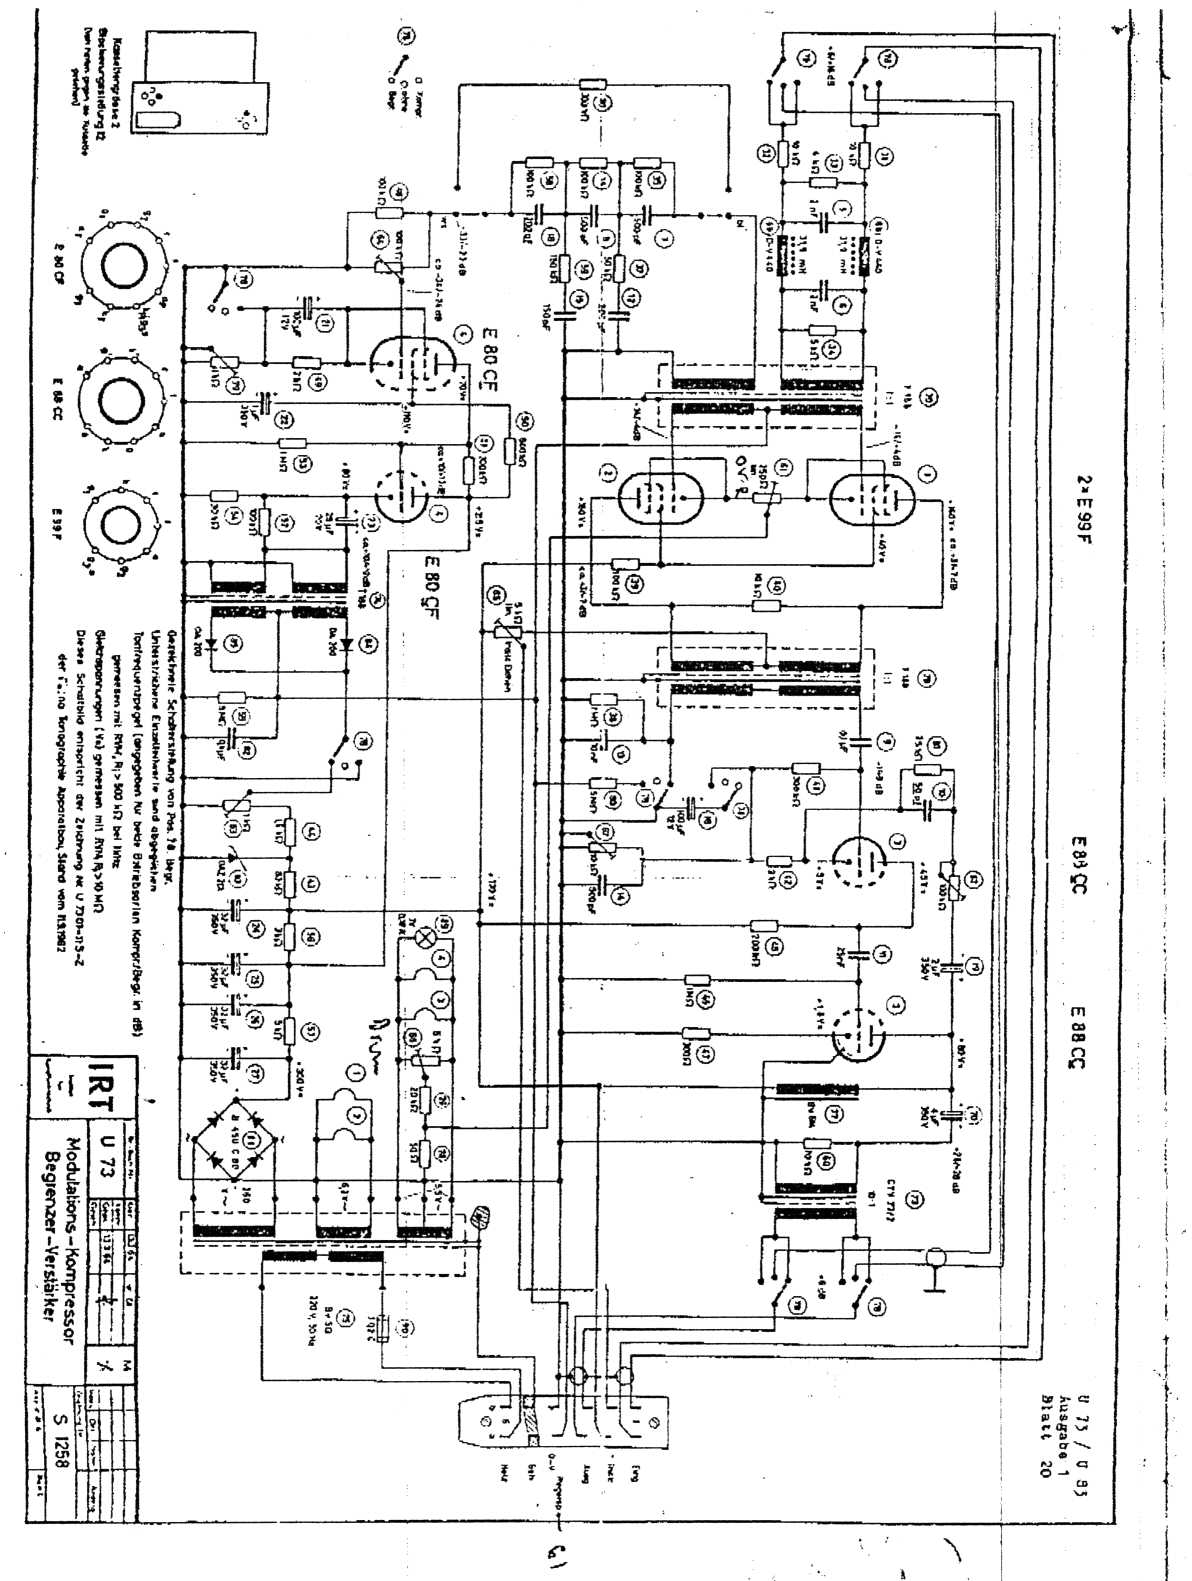 2 Way Speaker Crossover Schematics